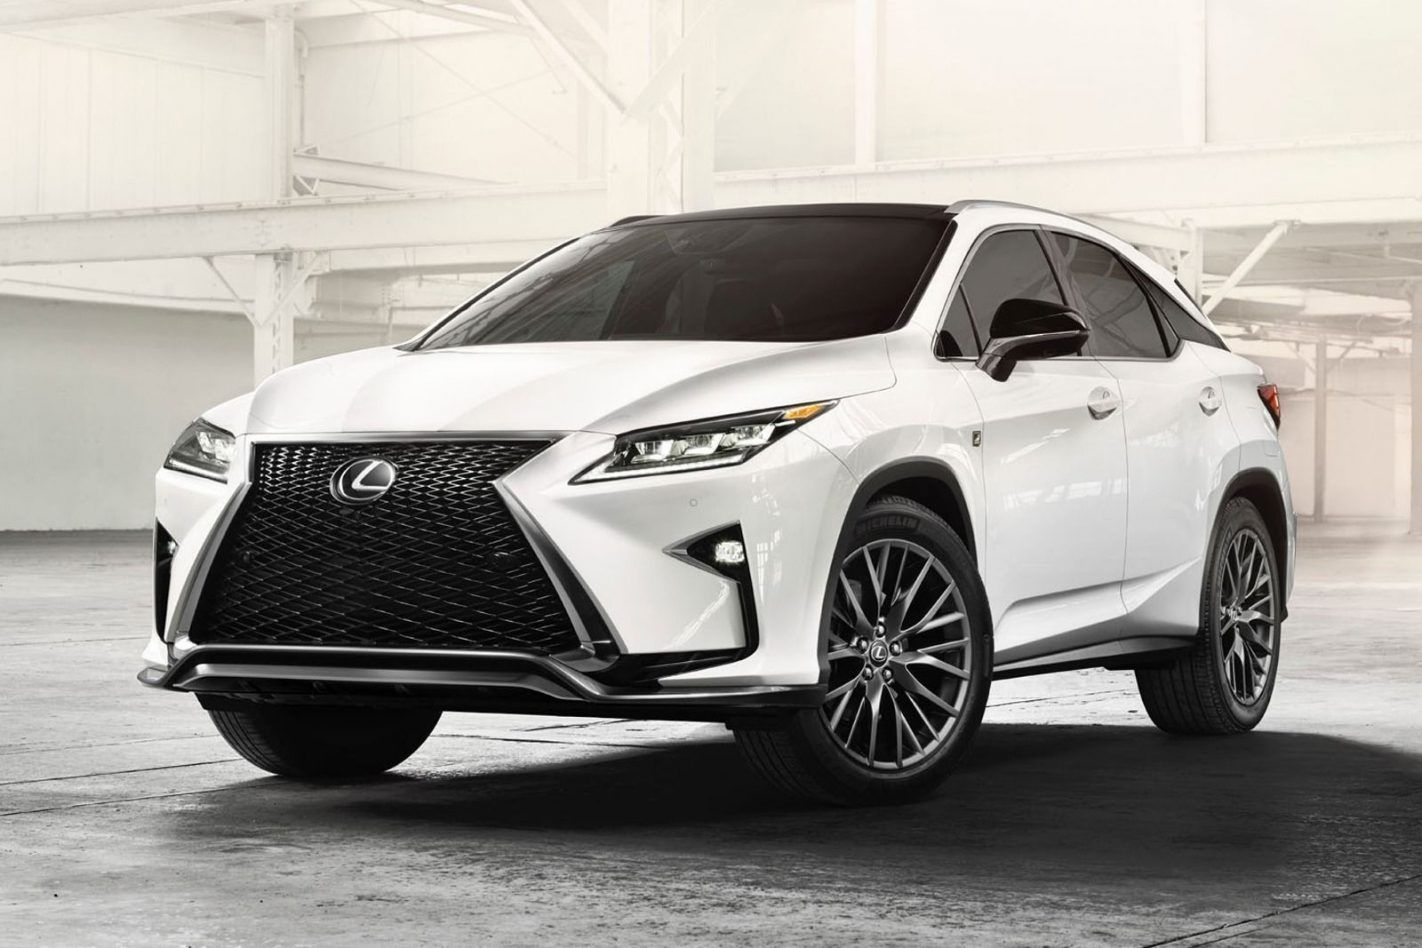 2020 Lexus RX 350 Review, Engine, Design, Release Date